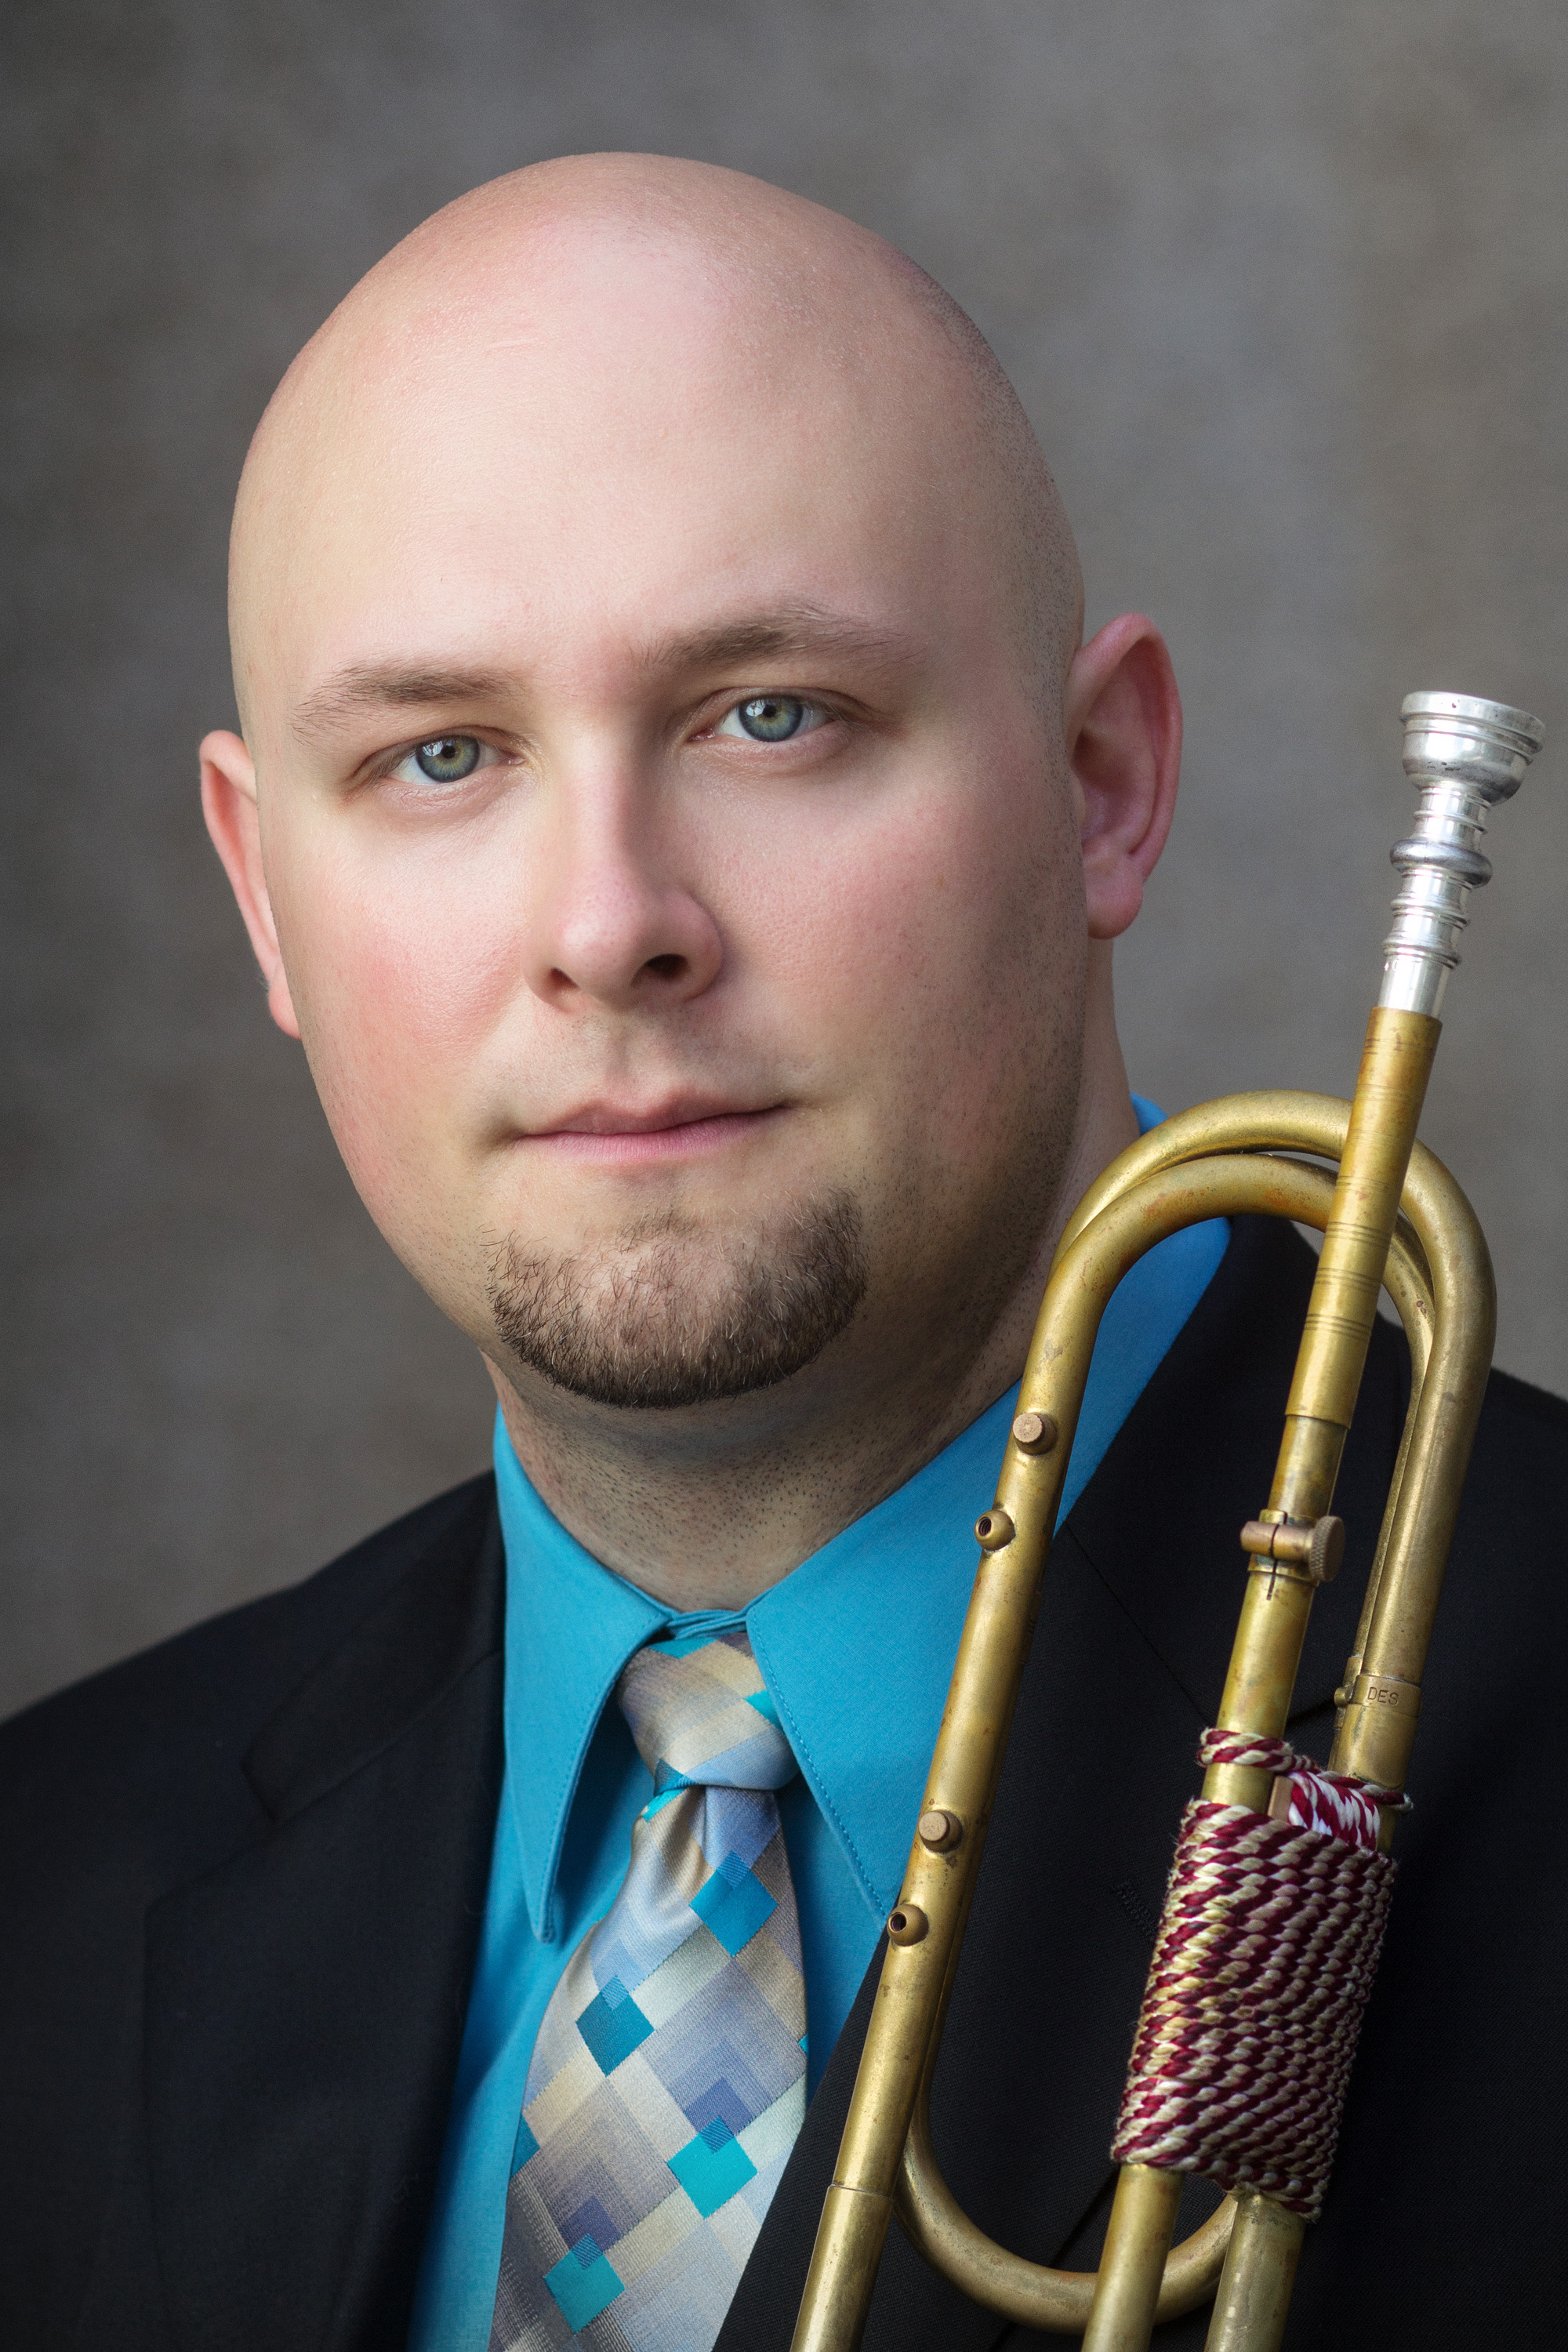 Shelby Lewis, trumpet